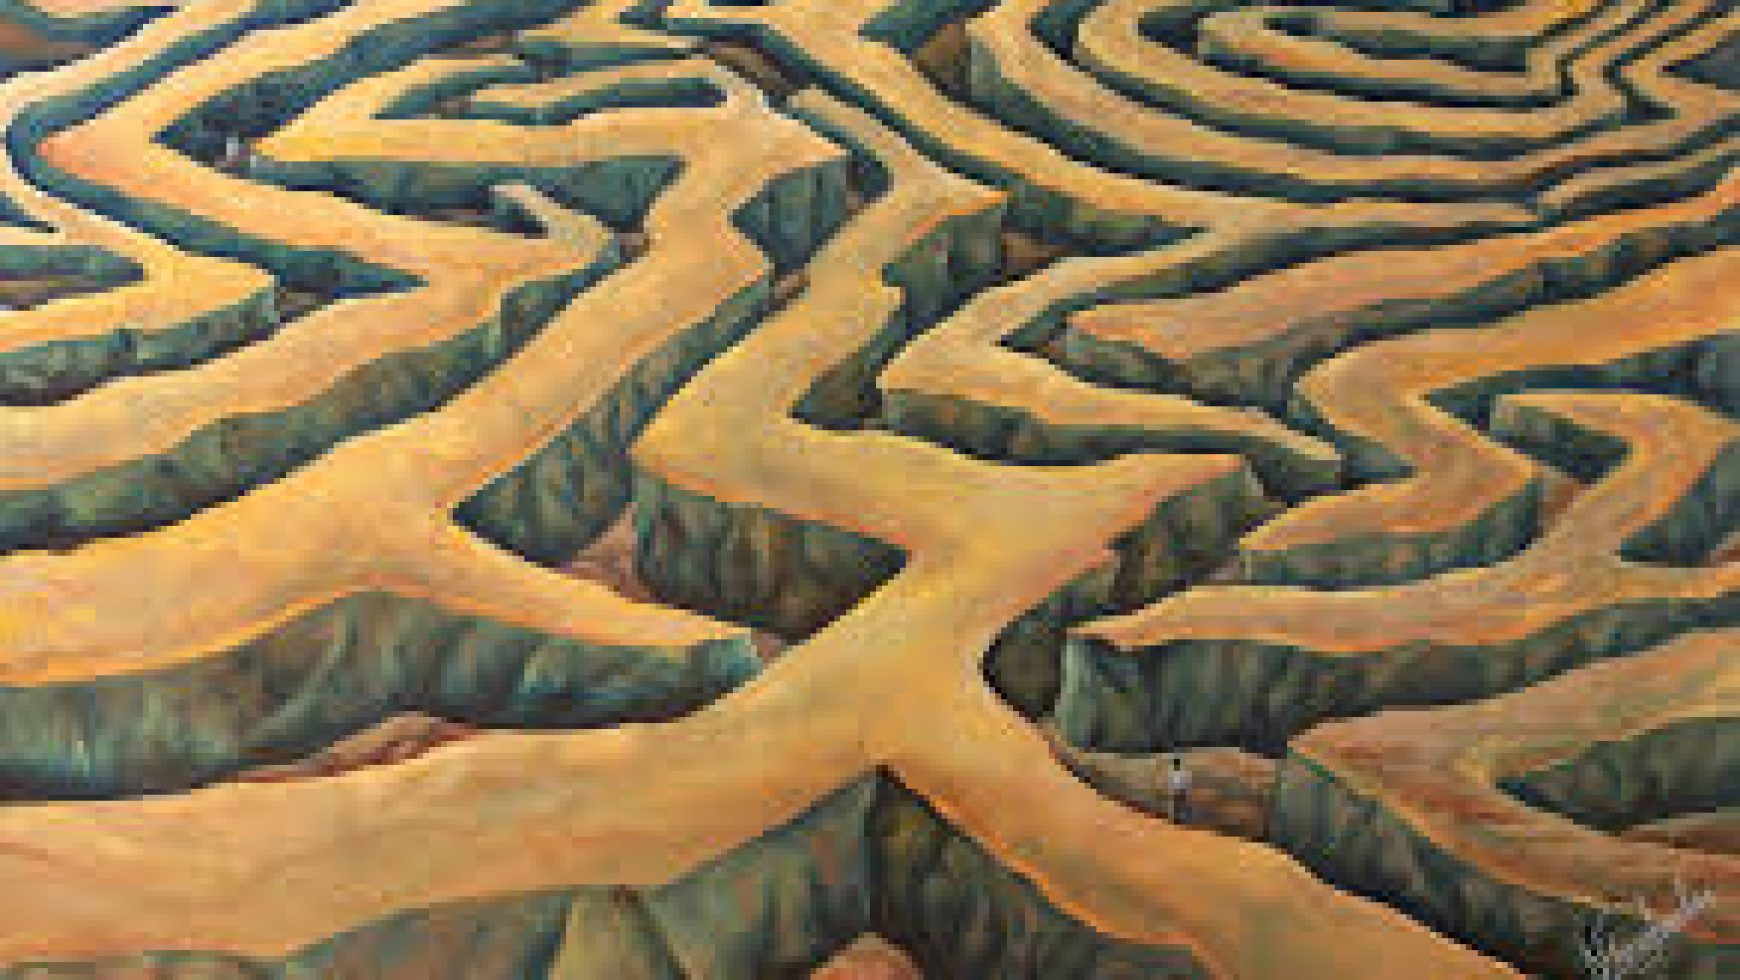 Into the Labyrinth – A devotion for August 27, 2020